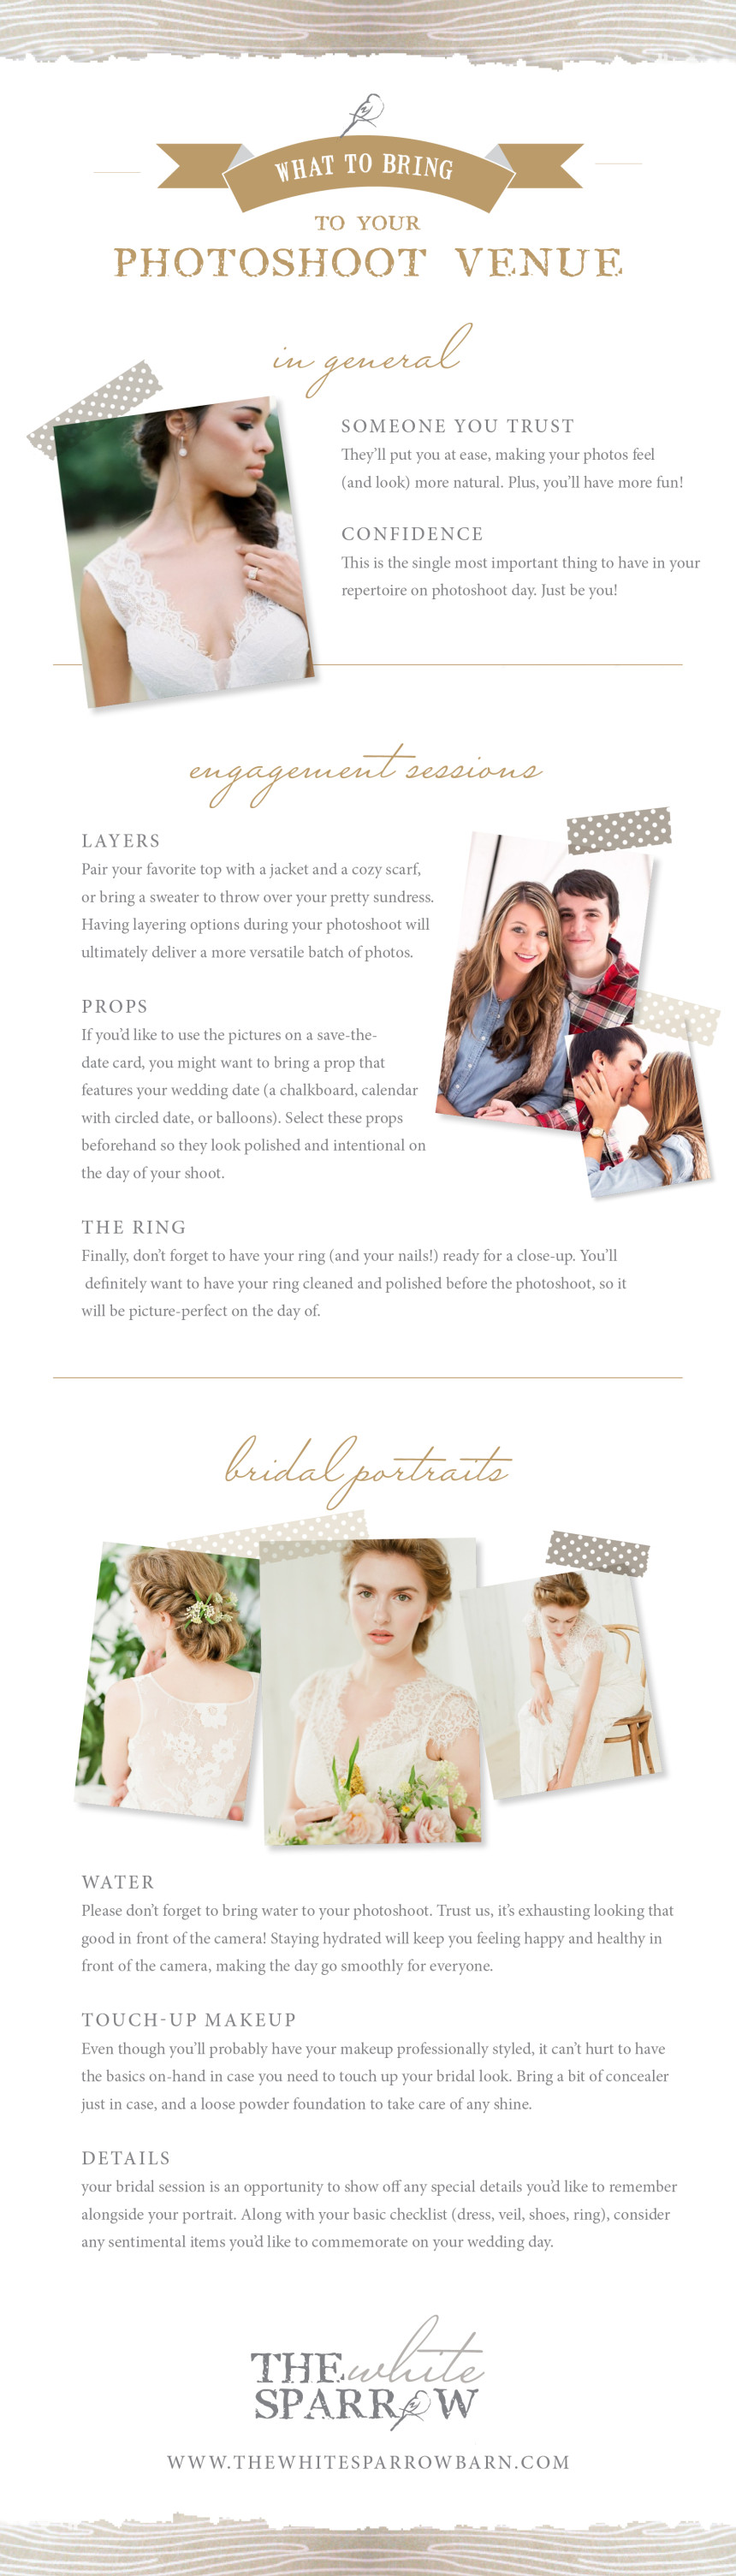 What to Bring to Your Photoshoot Venue | The White Sparrow Barn Venue